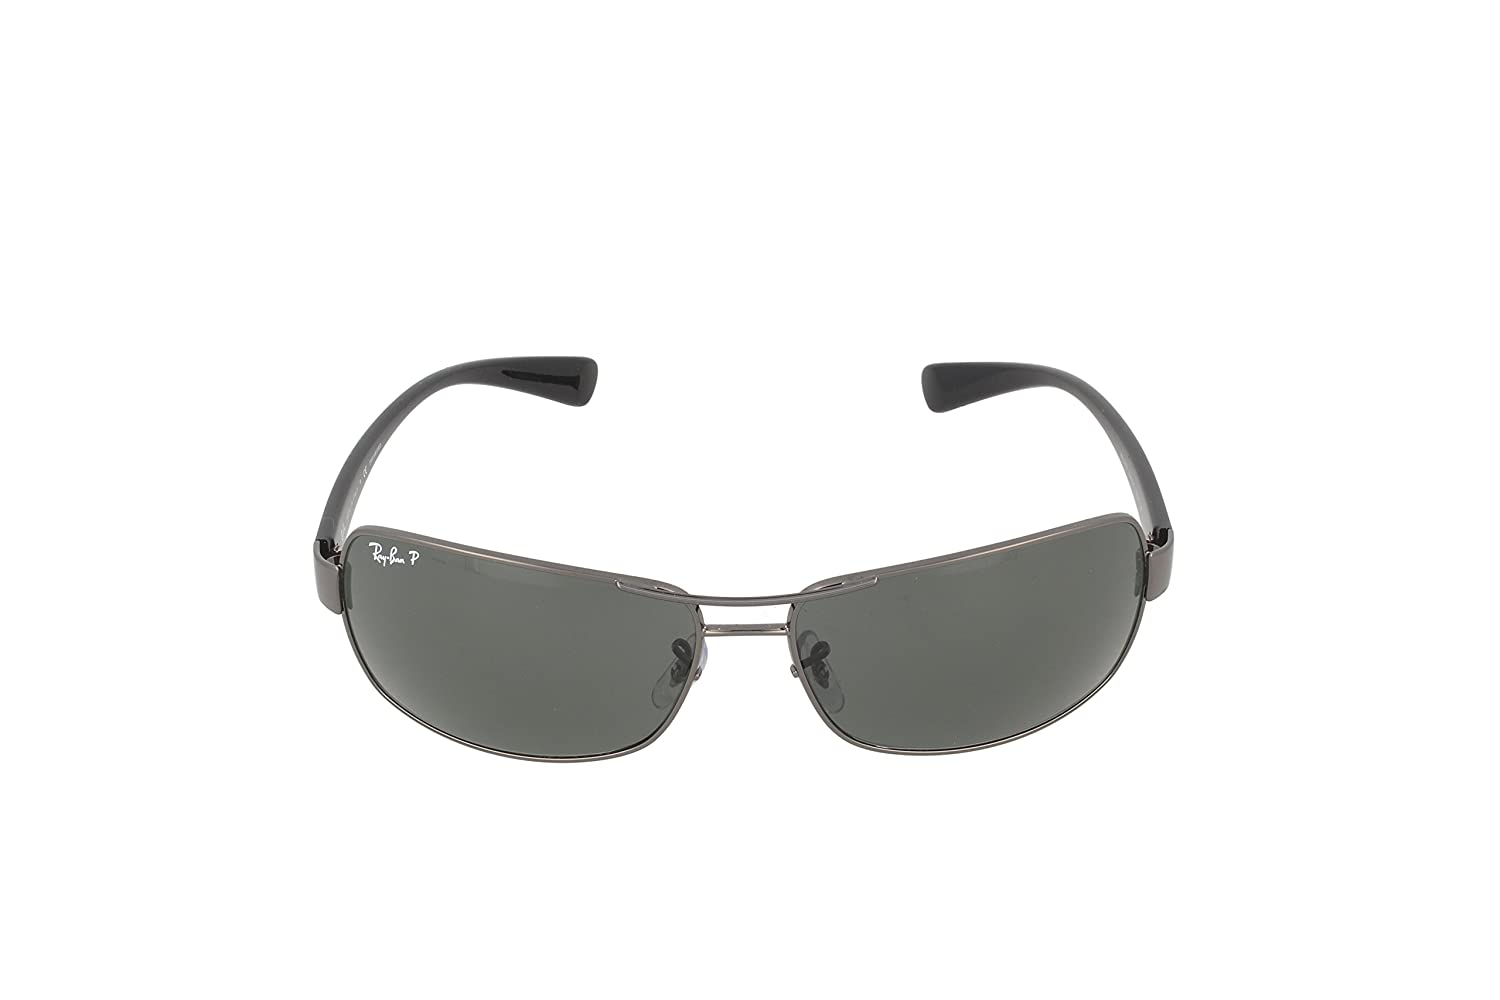 bf3a2e1fe7128 Ray-Ban 0rb3379-01004 58 64rb3379 - anteojos de sol polarizadas  rectangulares (64 mm)  Ray-Ban  Amazon.com.mx  Ropa